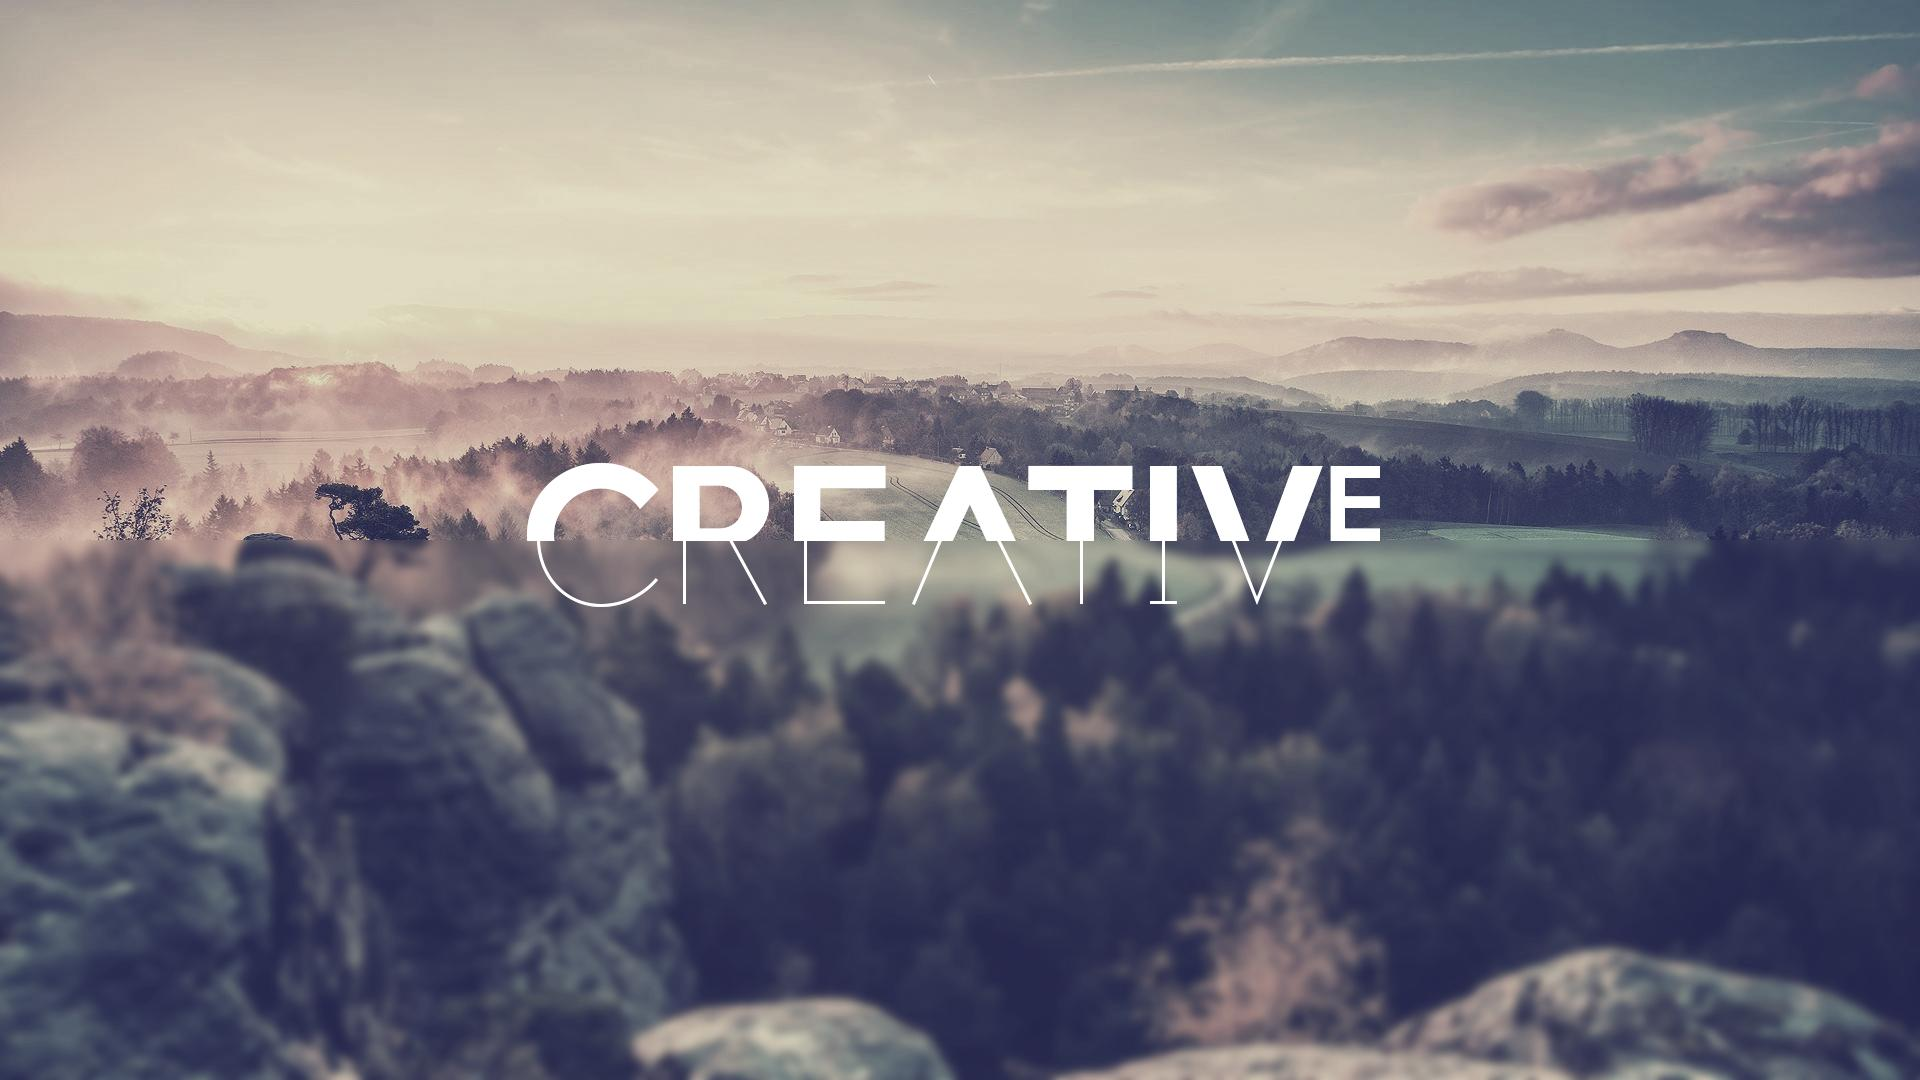 Creative Wallpapers